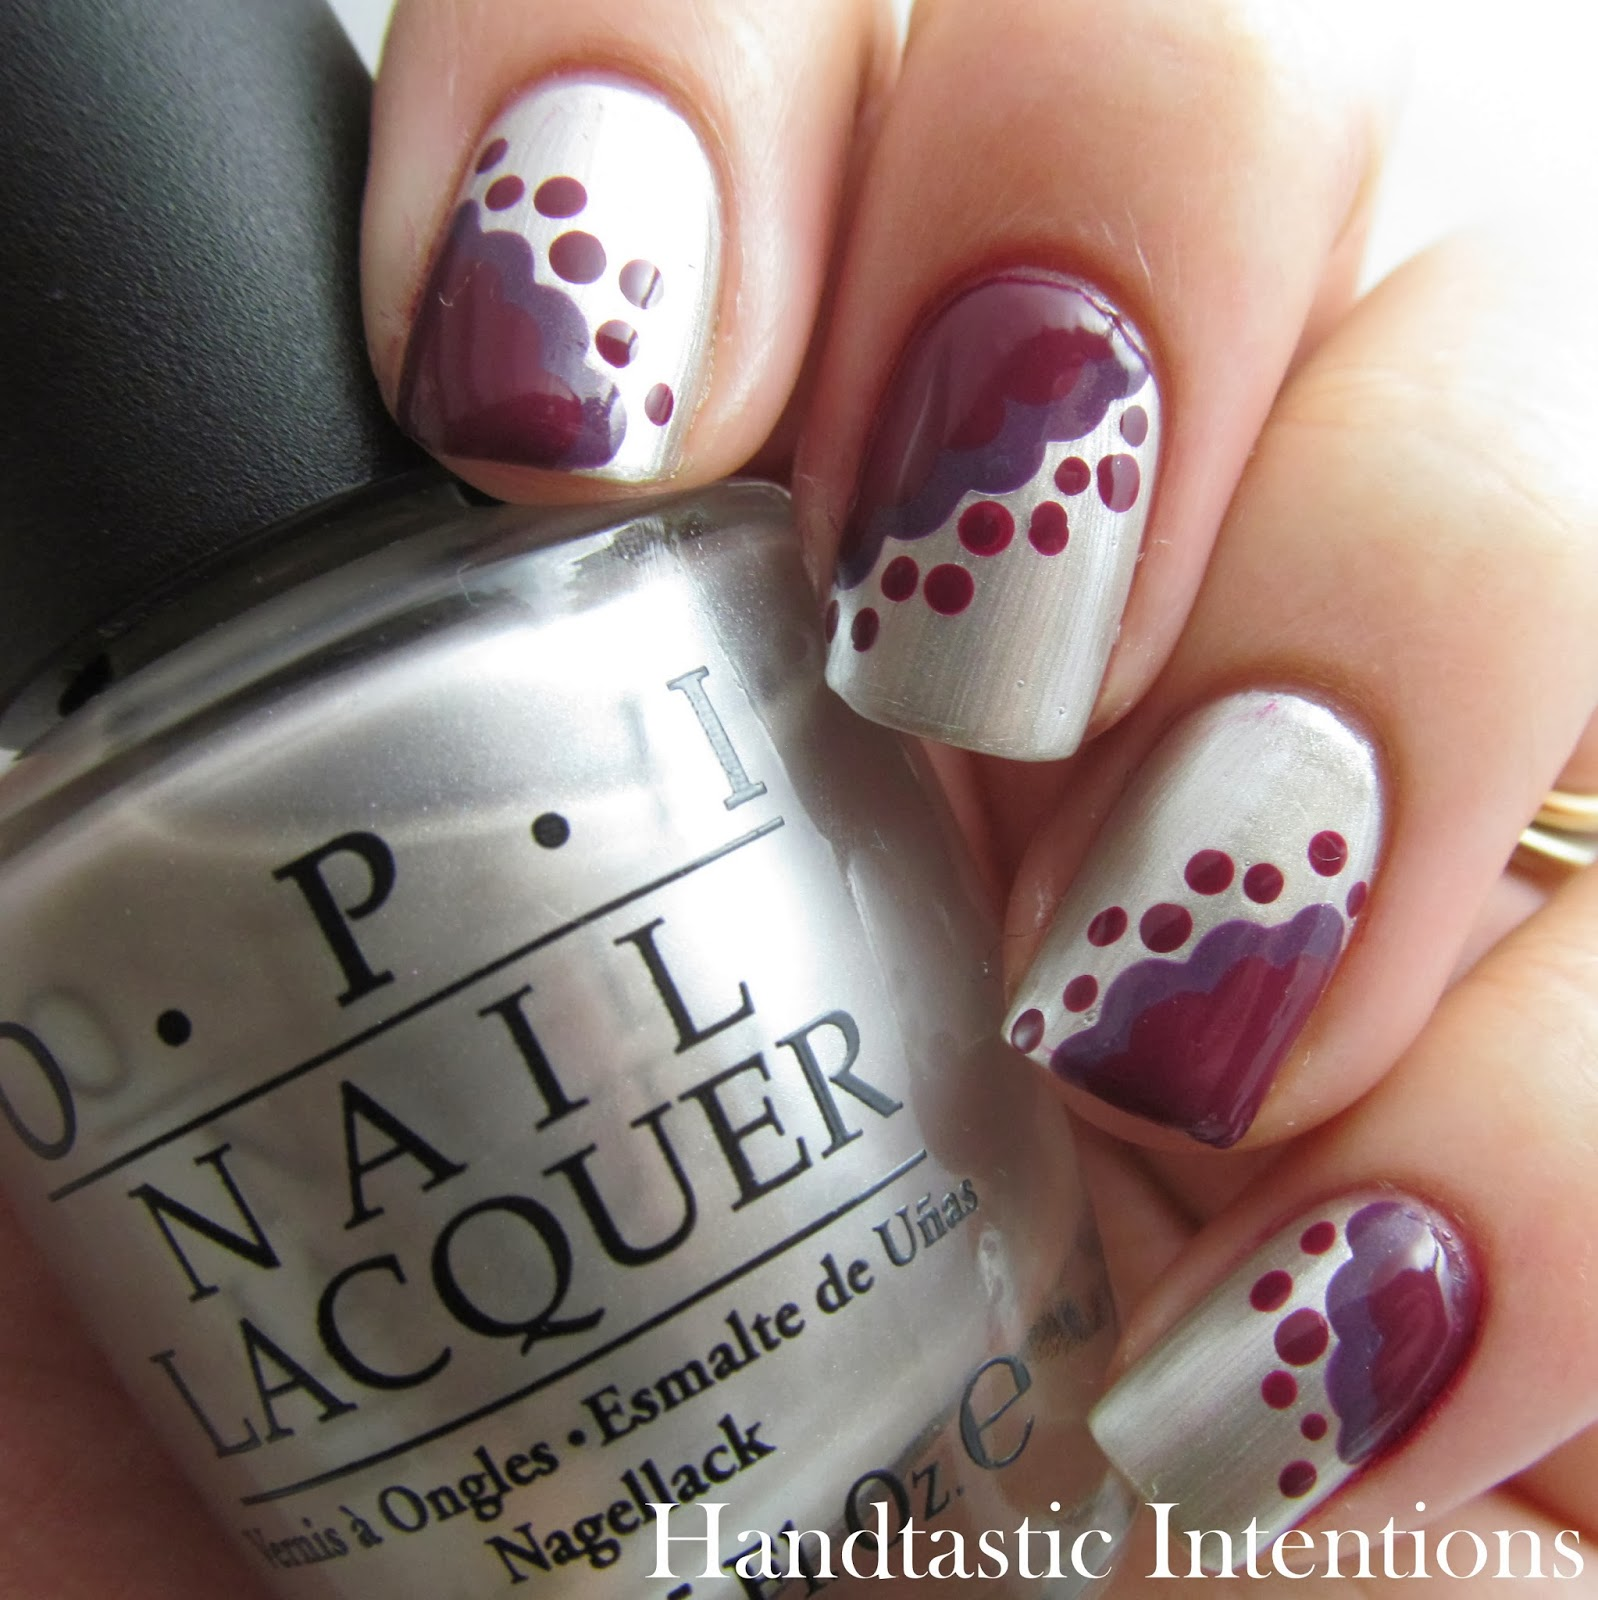 Handtastic Intentions Nail Art Lace